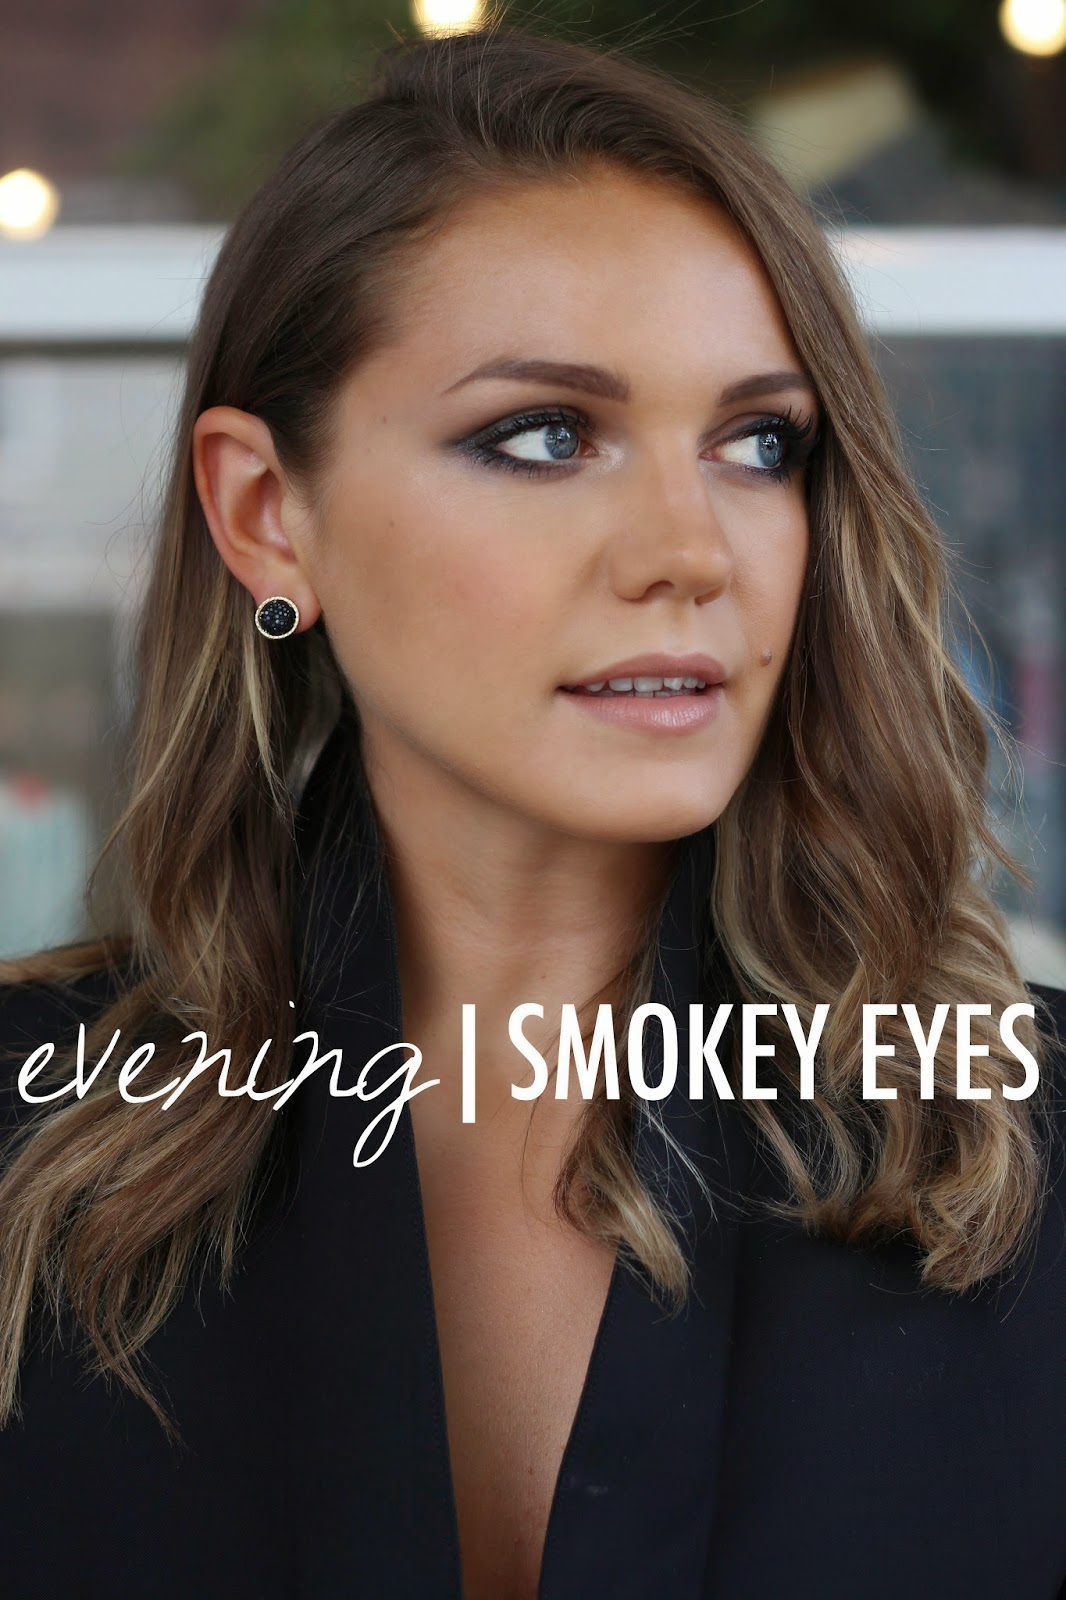 Evening Smokey Eyes | Bobbi Brown